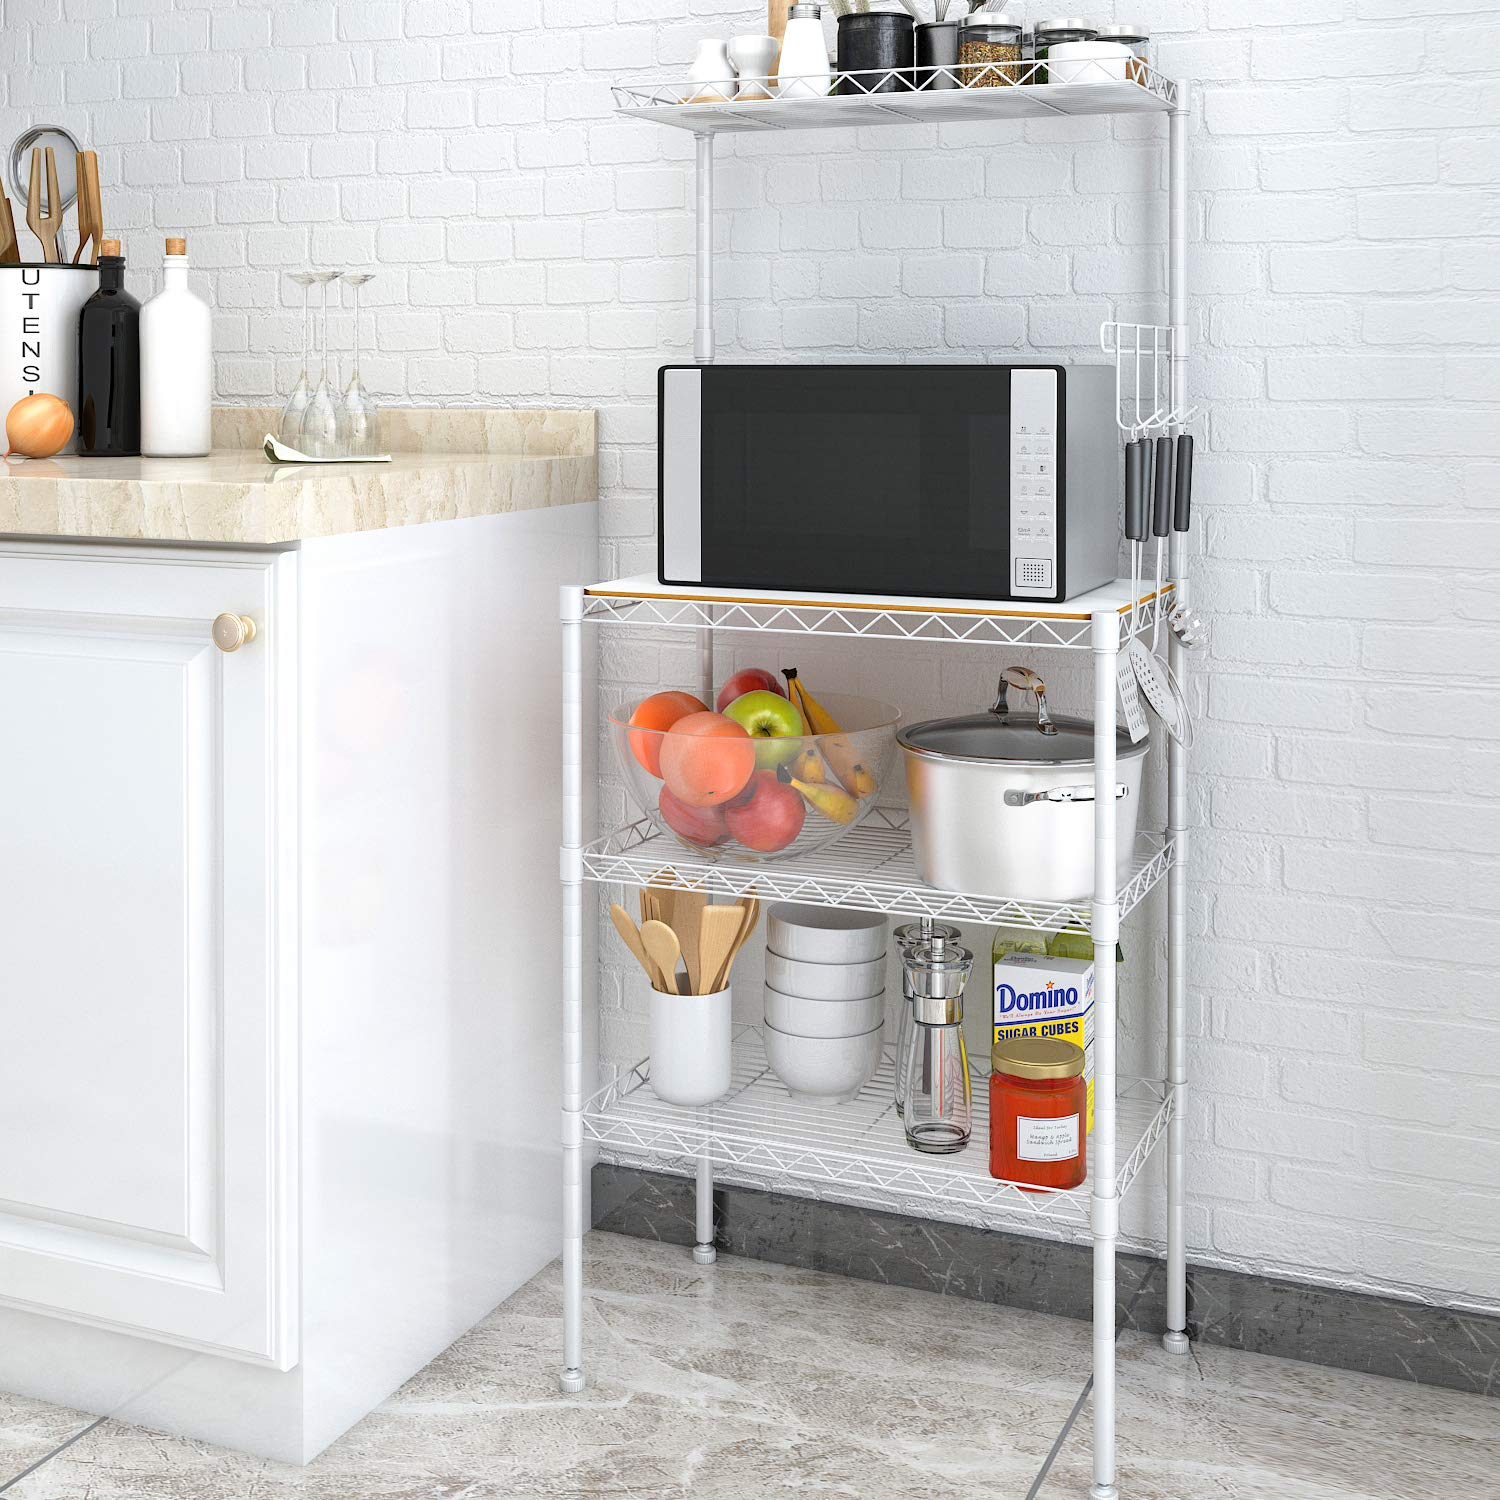 Lifewit 4-Tier Rolling Cart Slim Storage Cart Narrow Kitchen Cart Mesh Wire Metal with Wheels for Gap Kitchen, Bathroom Slim Storage Rack LF233195WH